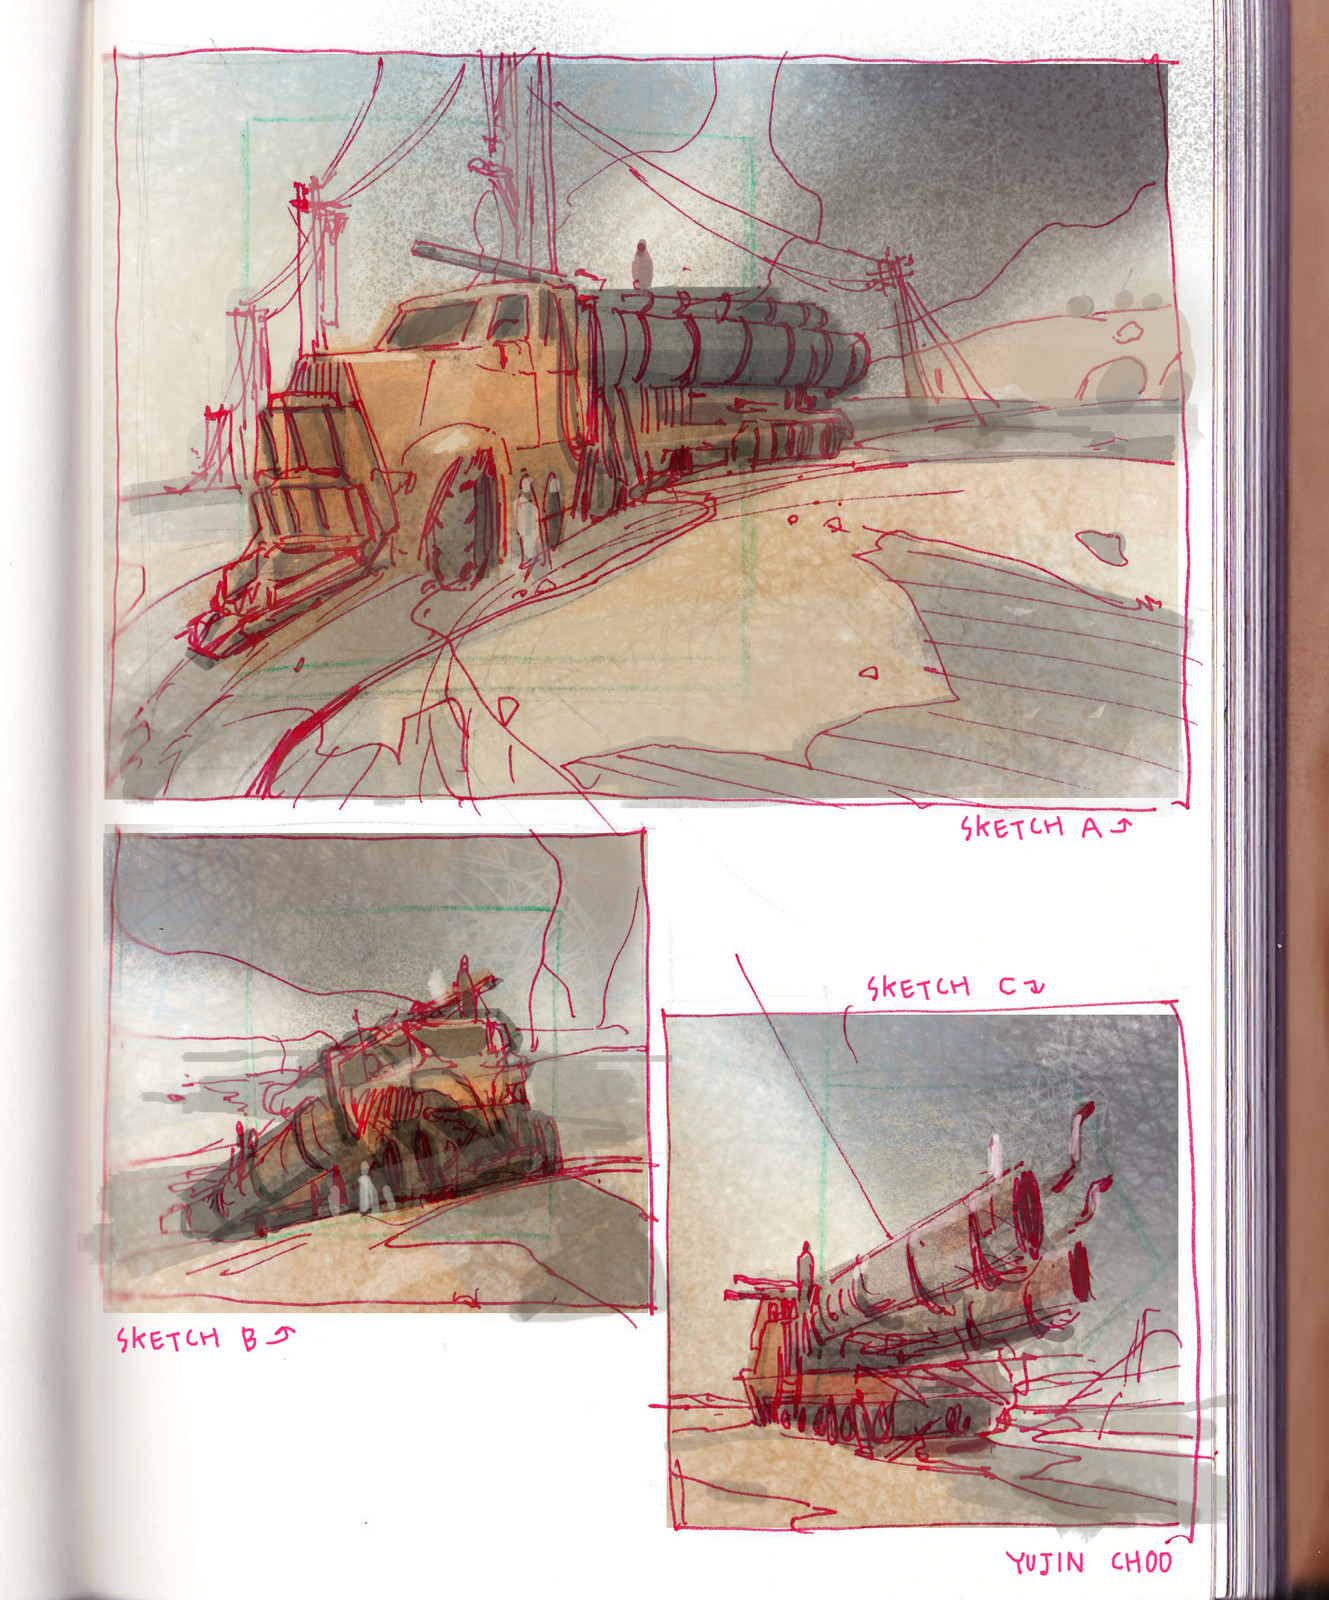 Sketchbook Sketches/ Composition plan